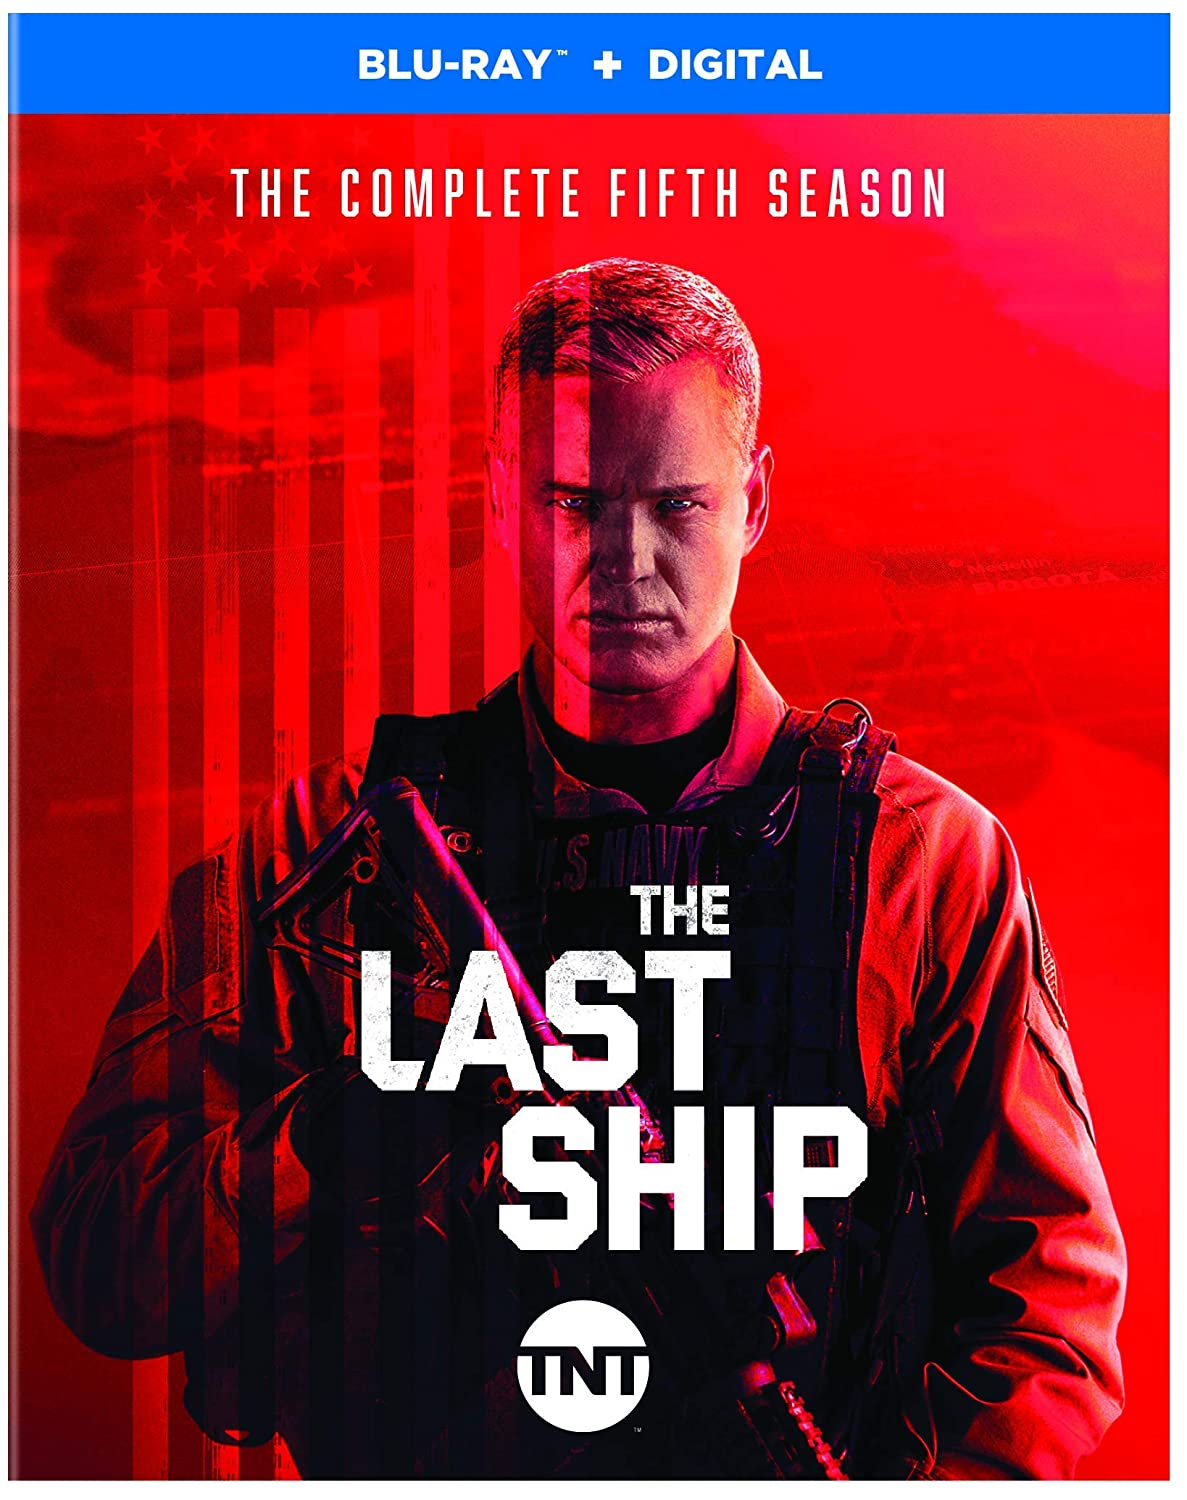 The Last Ship: The Complete Fifth Season (Blu-ray)